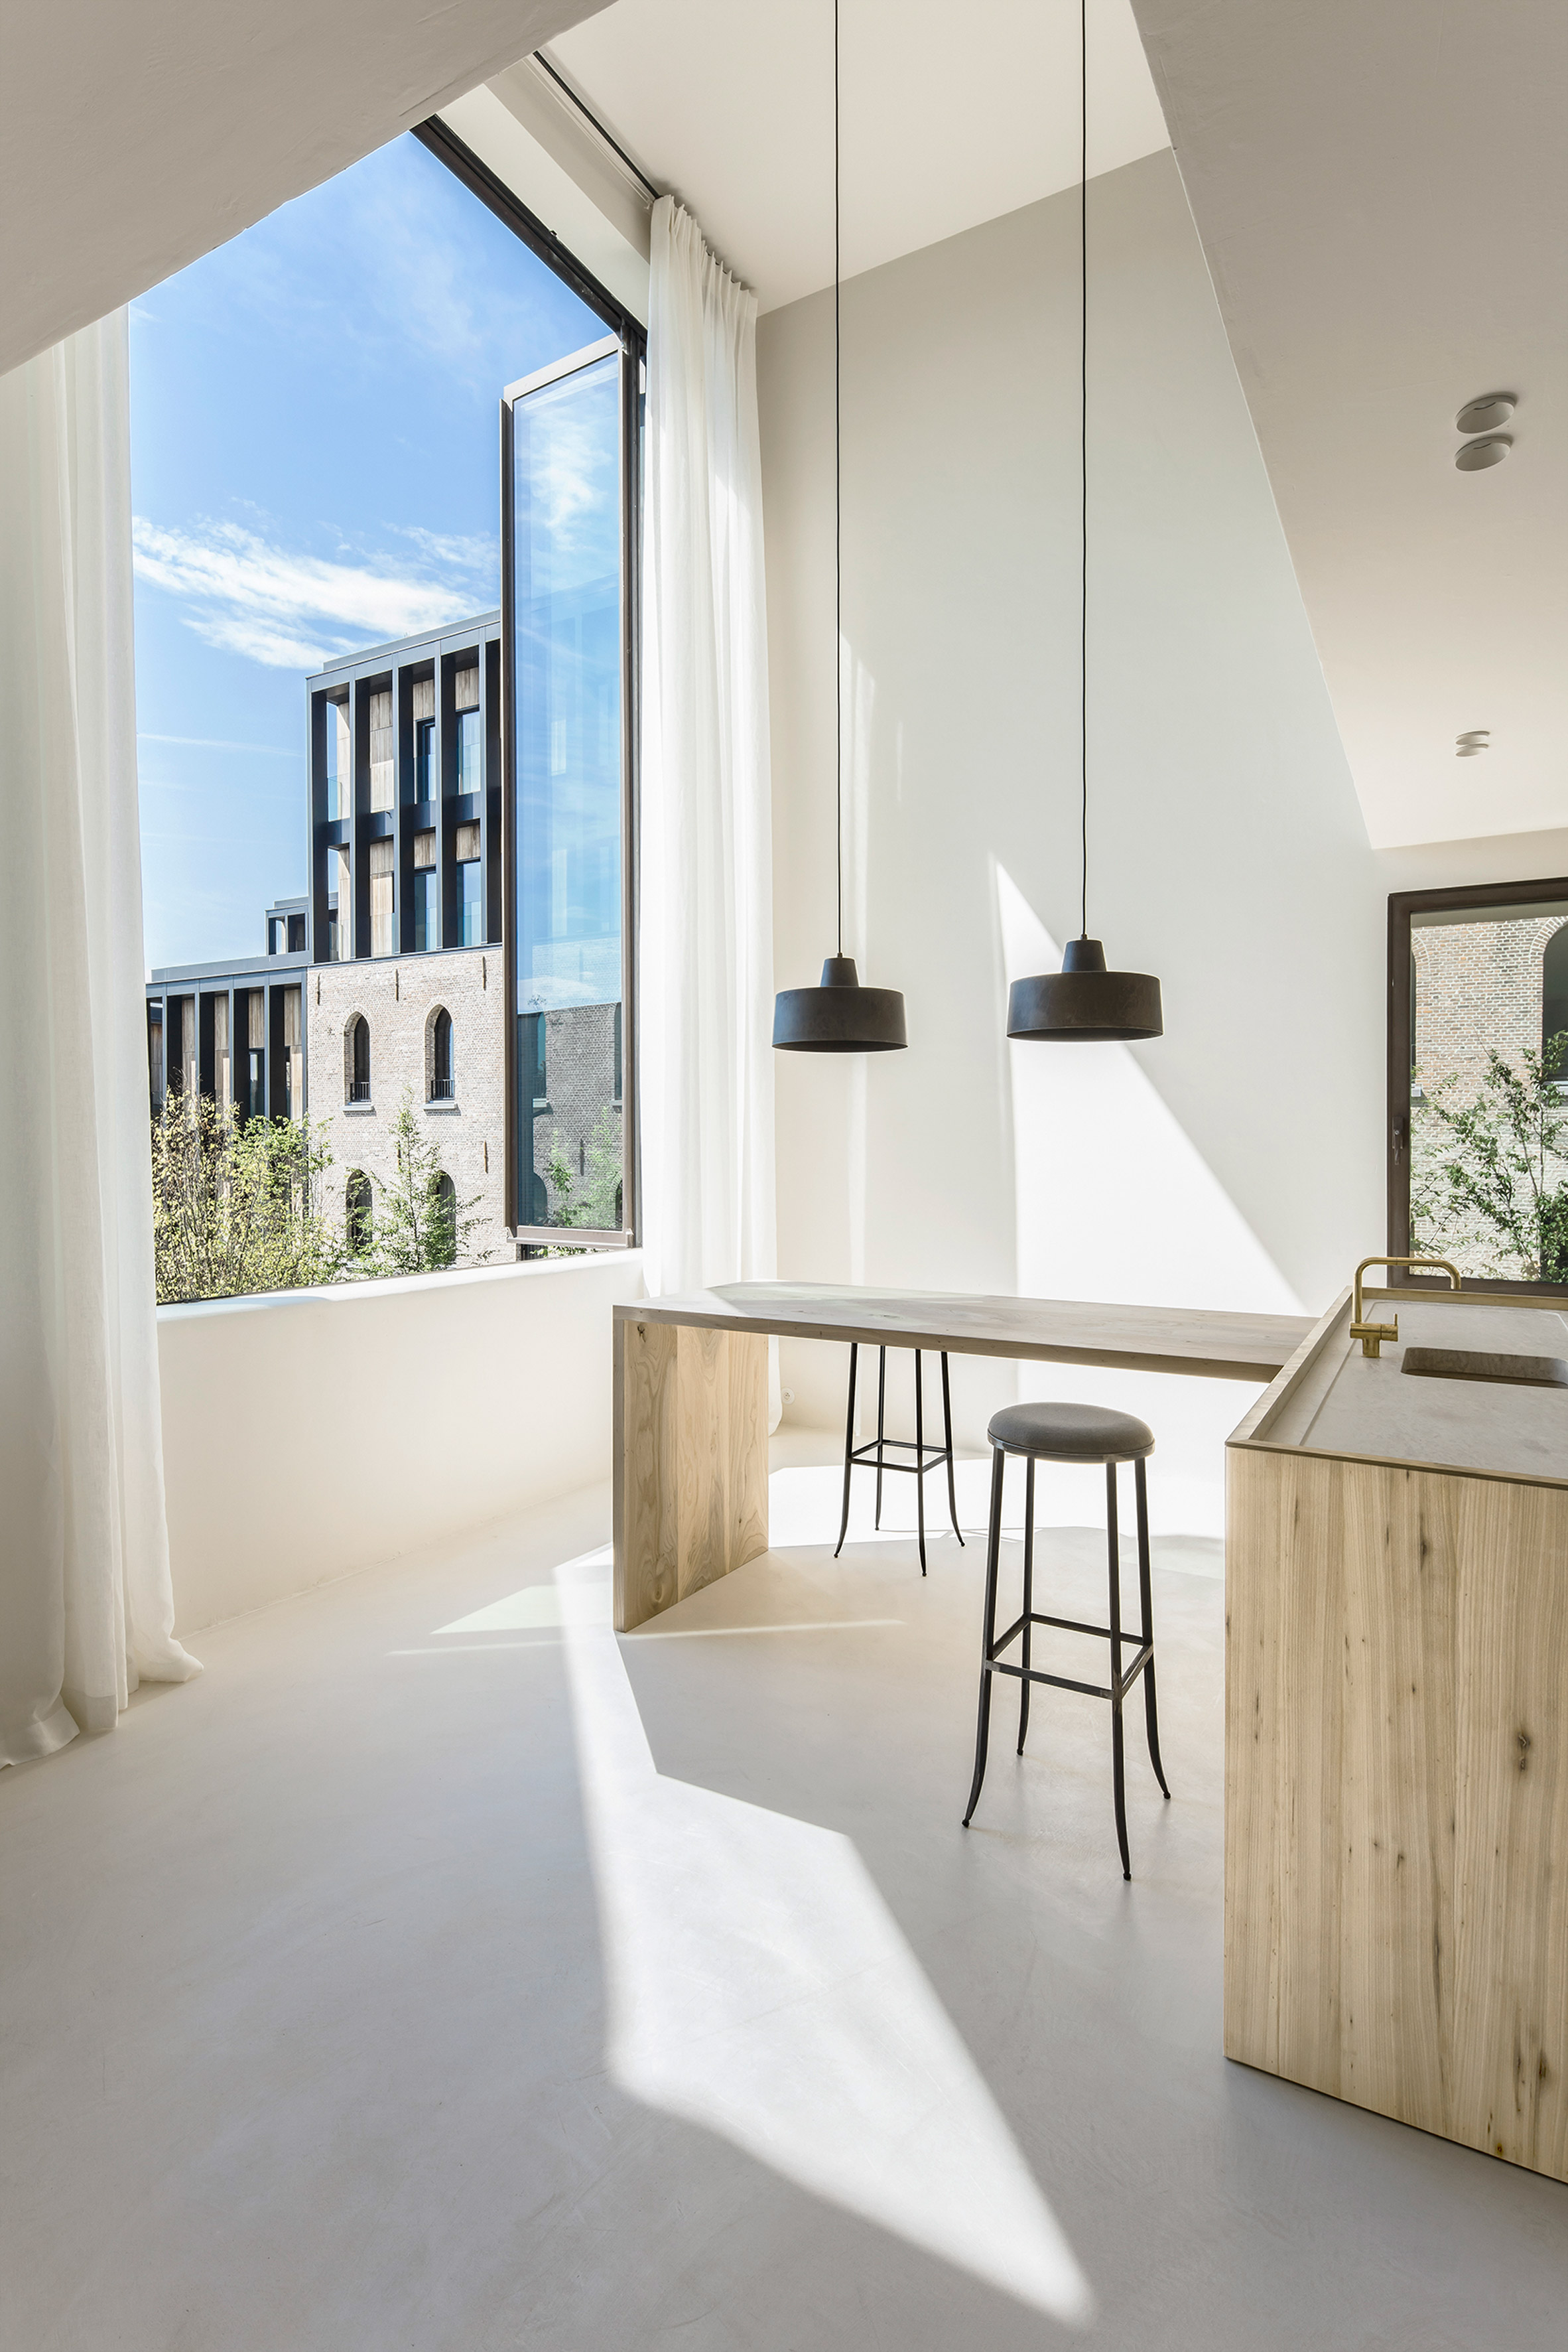 """Arjaan De Feyter combines """"light and warm materials"""" in converted ..."""